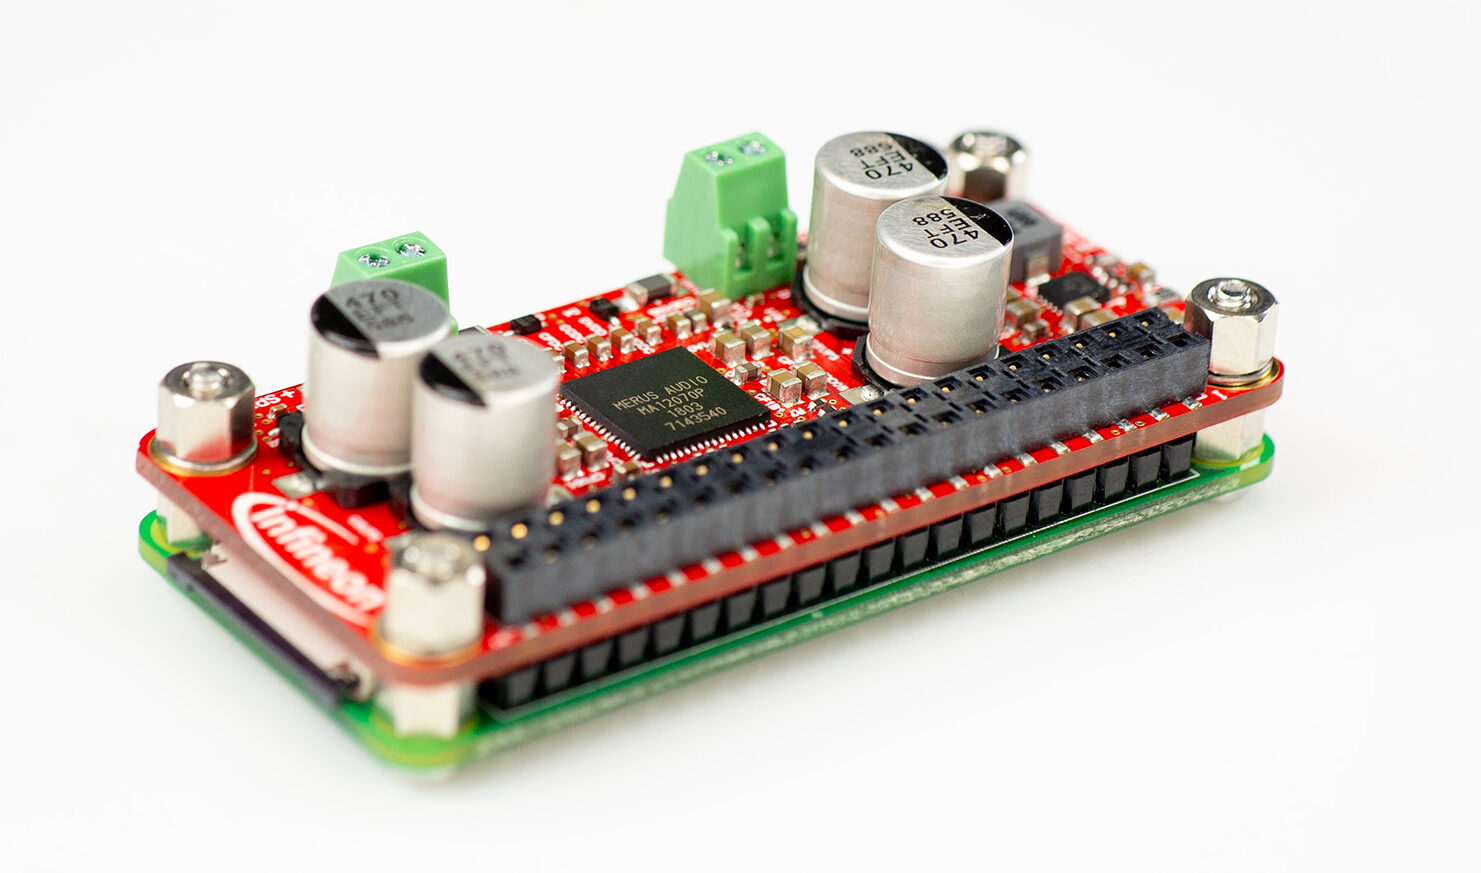 World's first fully self-contained Raspberry Pi audio HAT board with MERUS™ class D multilevel amplifier